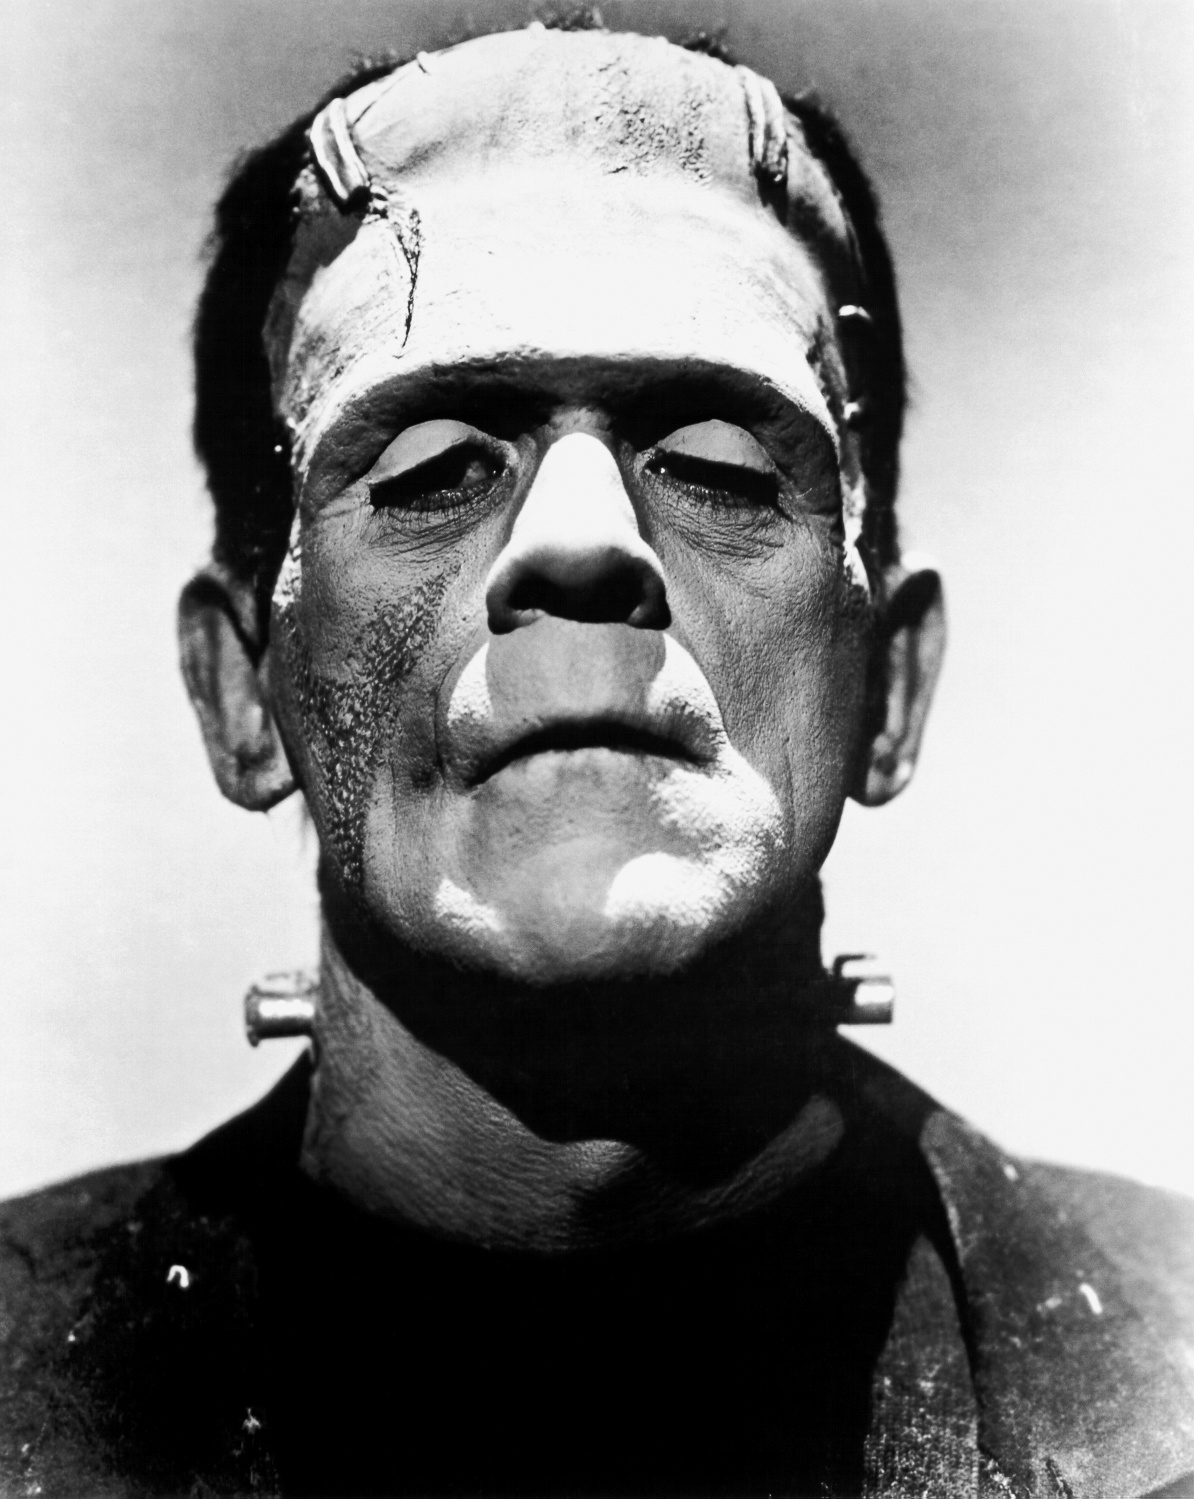 an analysis of the role of protagonist and antagonist in mary shelleys novel frankenstein Get an answer for 'in mary shelley's novel frankenstein, who is the protagonist' and find homework help for other frankenstein questions at enotes.